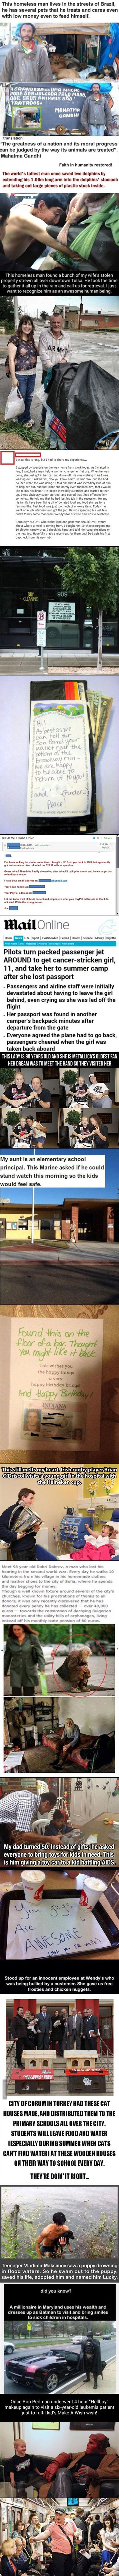 Here are some random acts of kindness that restore faith to humanity.